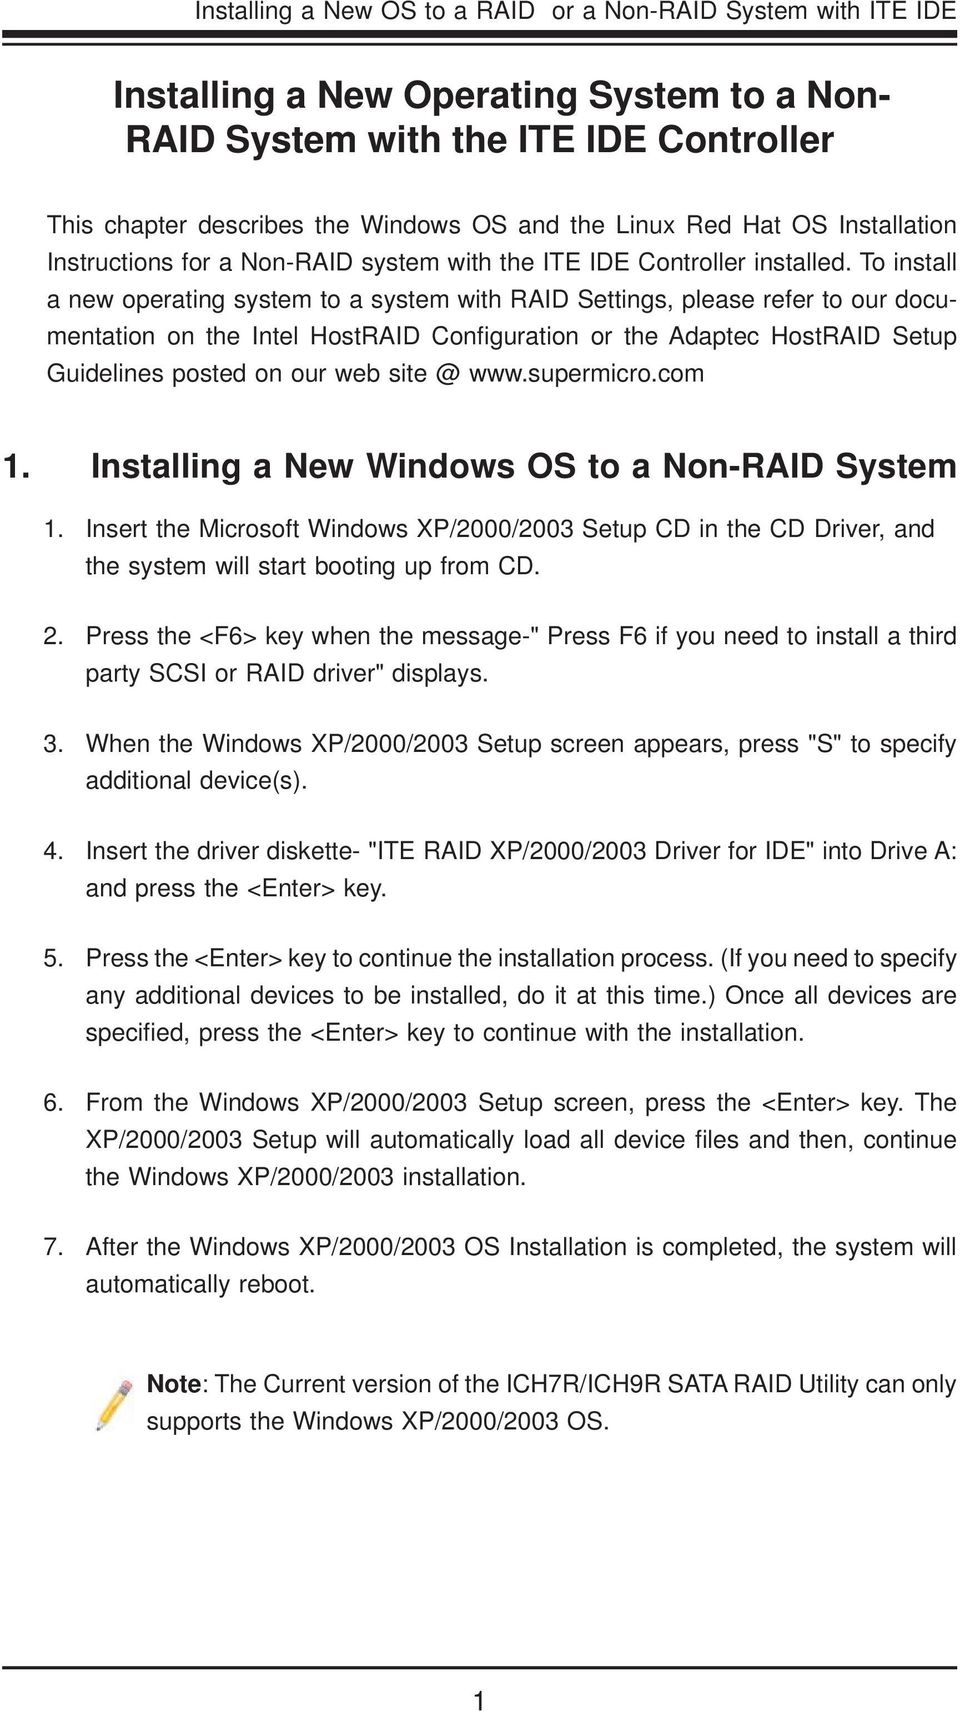 To install a new operating system to a system with RAID Settings, please refer to our documentation on the Intel HostRAID Confi guration or the Adaptec HostRAID Setup Guidelines posted on our web